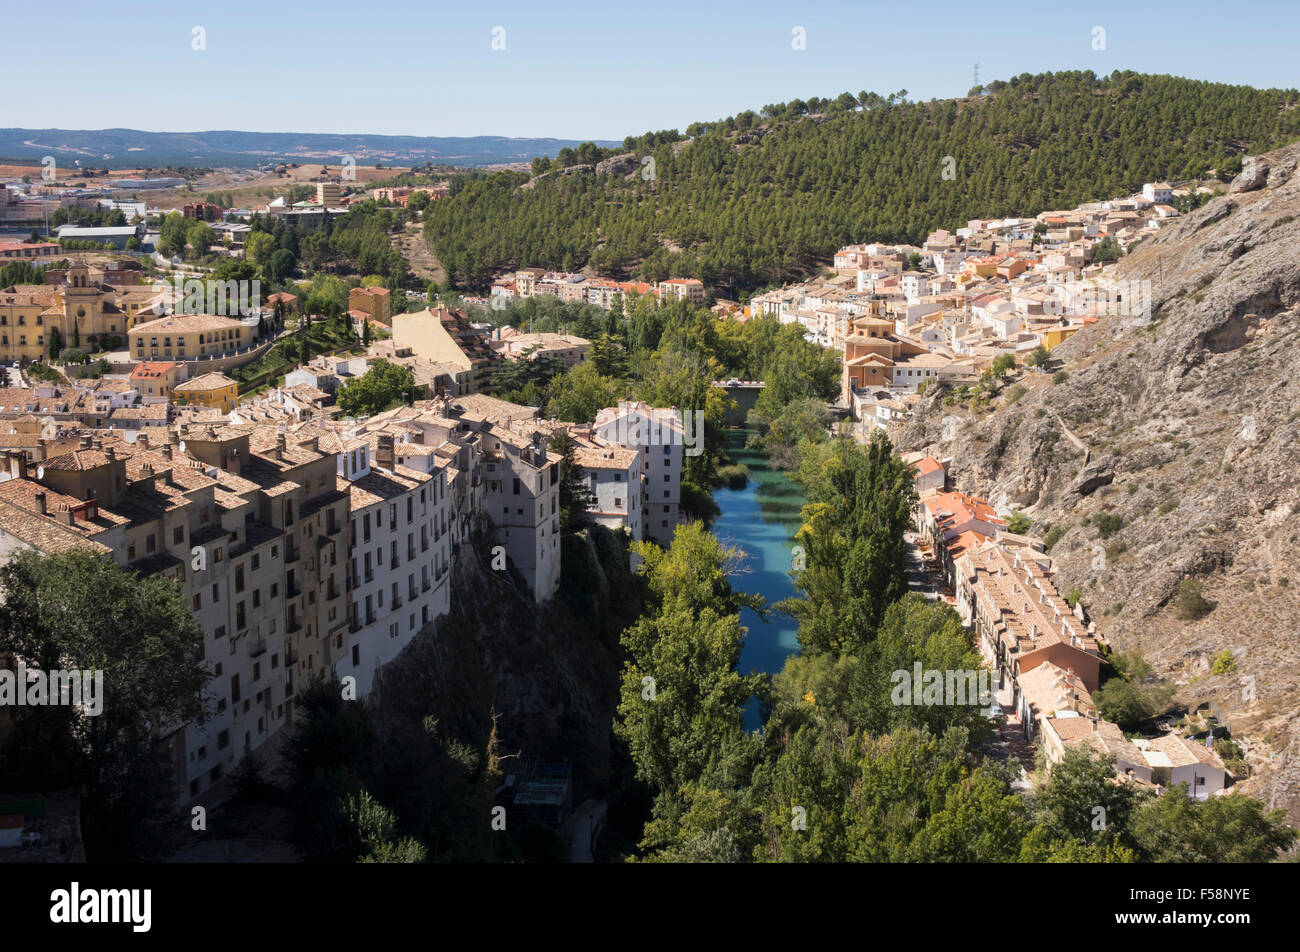 Aerial view of river and town of Cuenca in Castilla-La Mancha, Spain, Europe - Stock Image